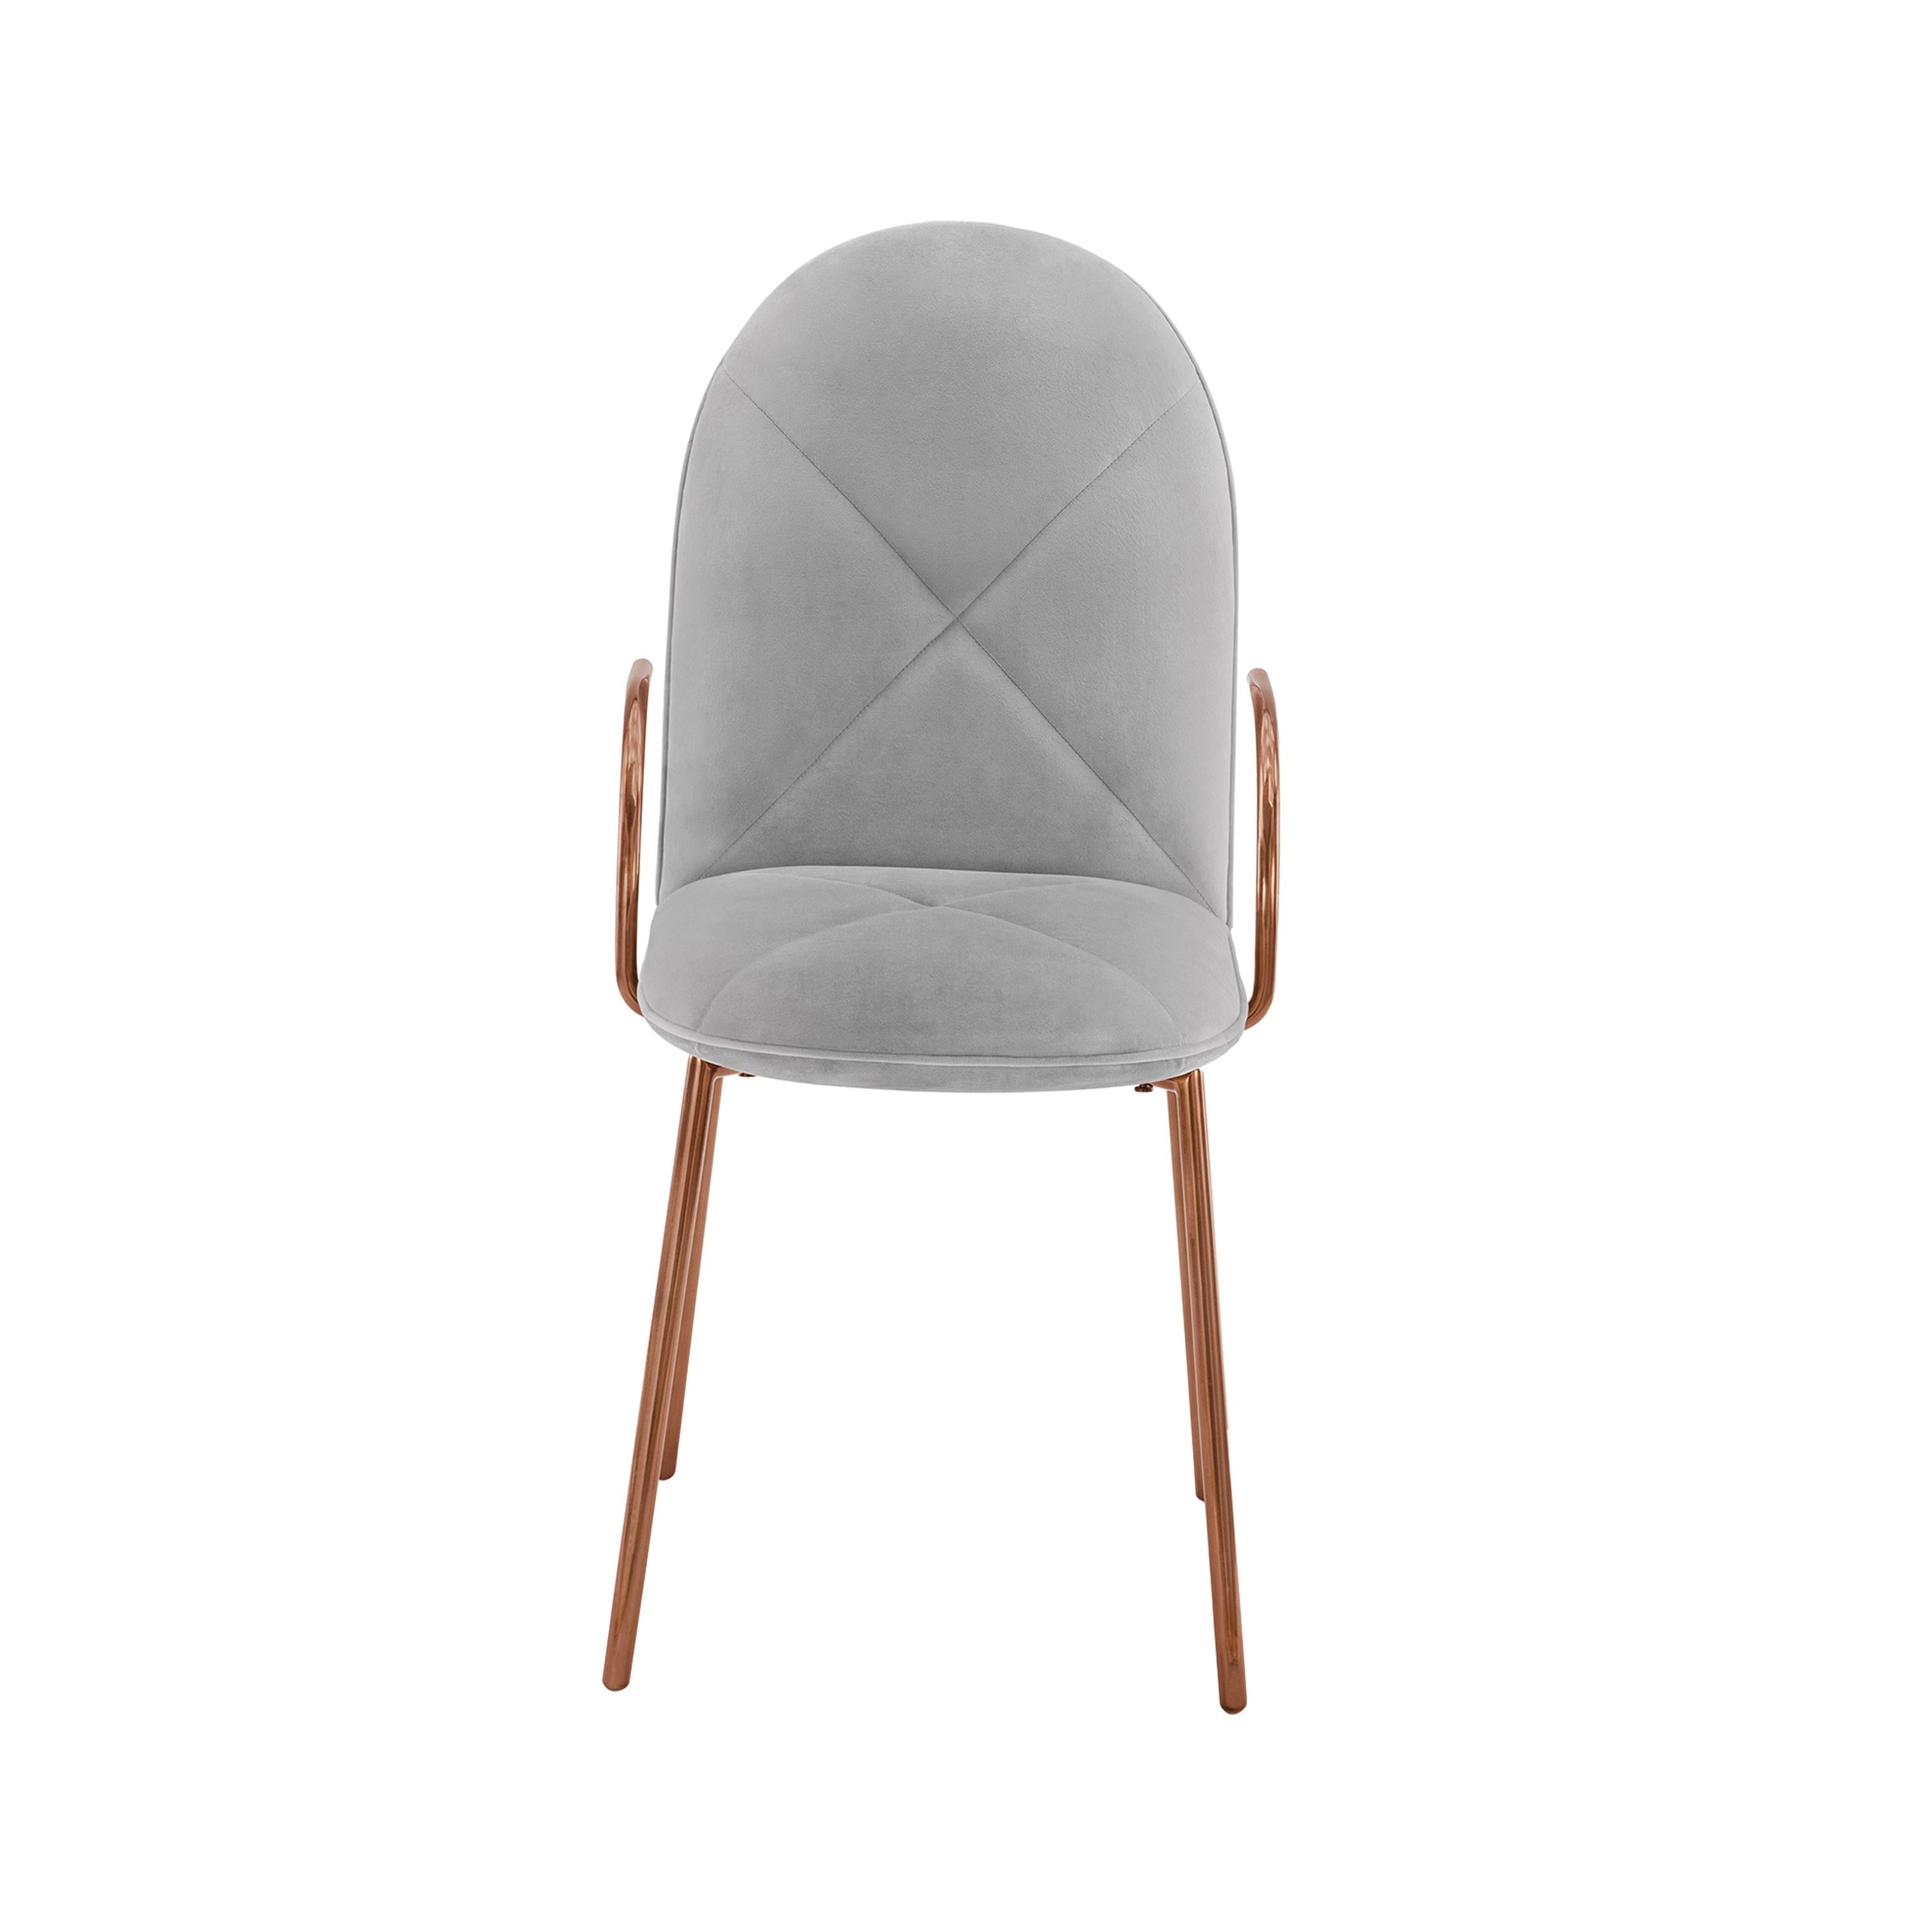 Orion Dining Chair with Plush Gray Velvet and Rose Gold Arms by Nika Zupanc